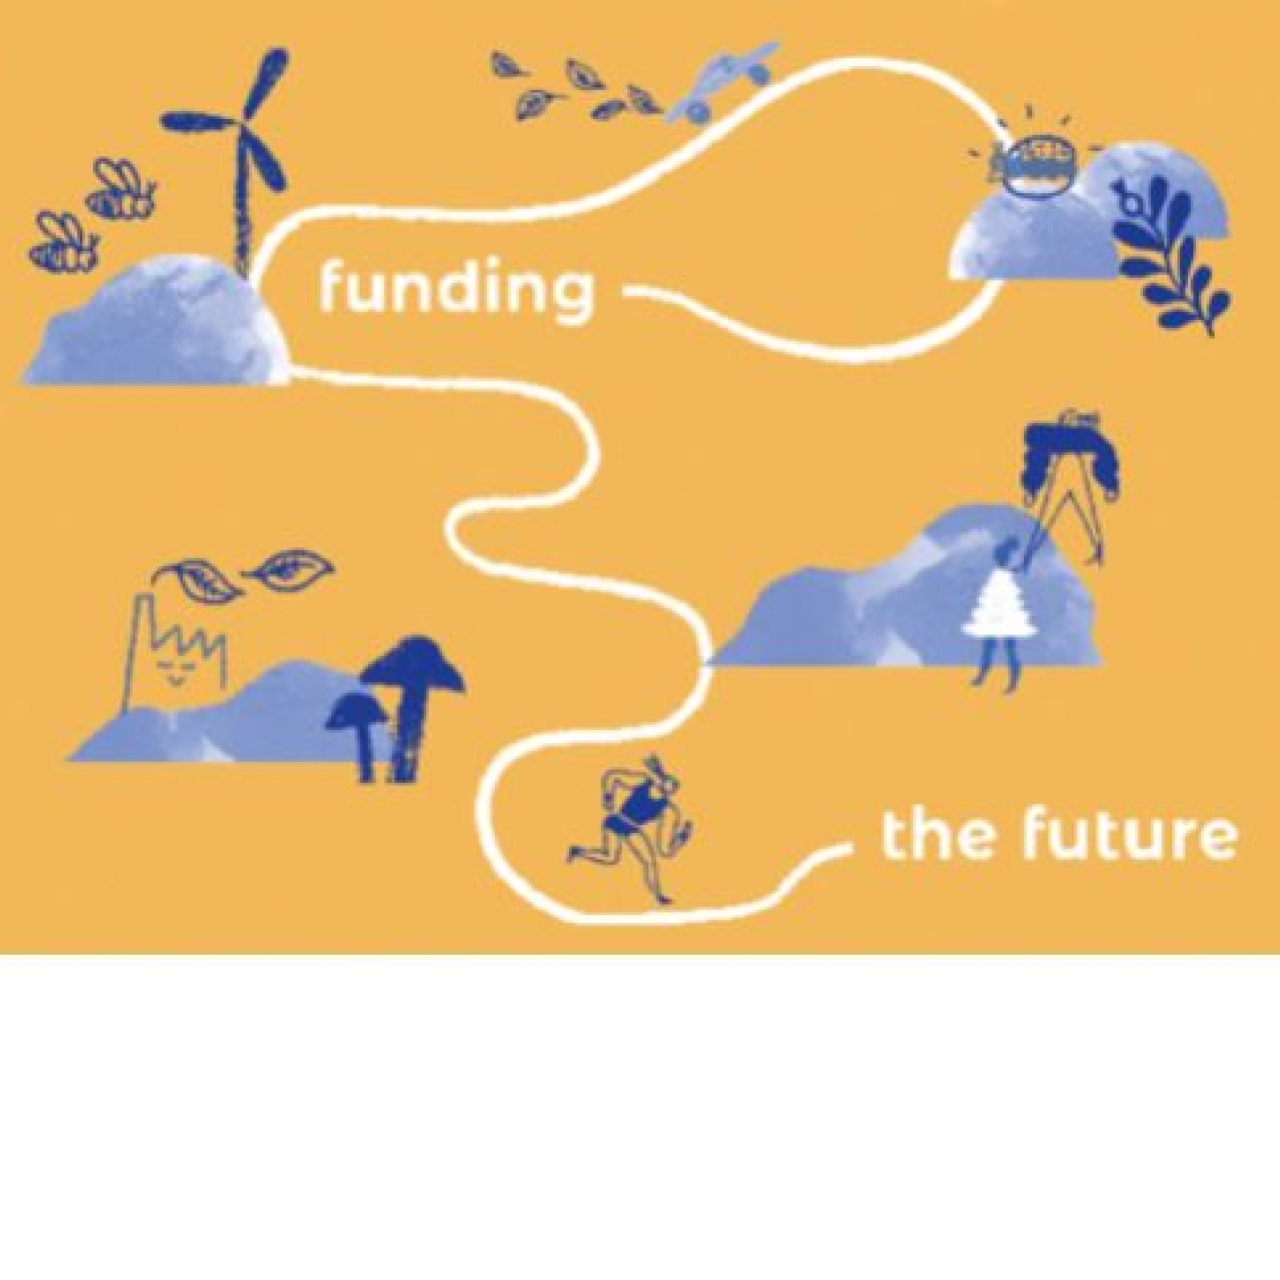 Afbeelding Funding The Future